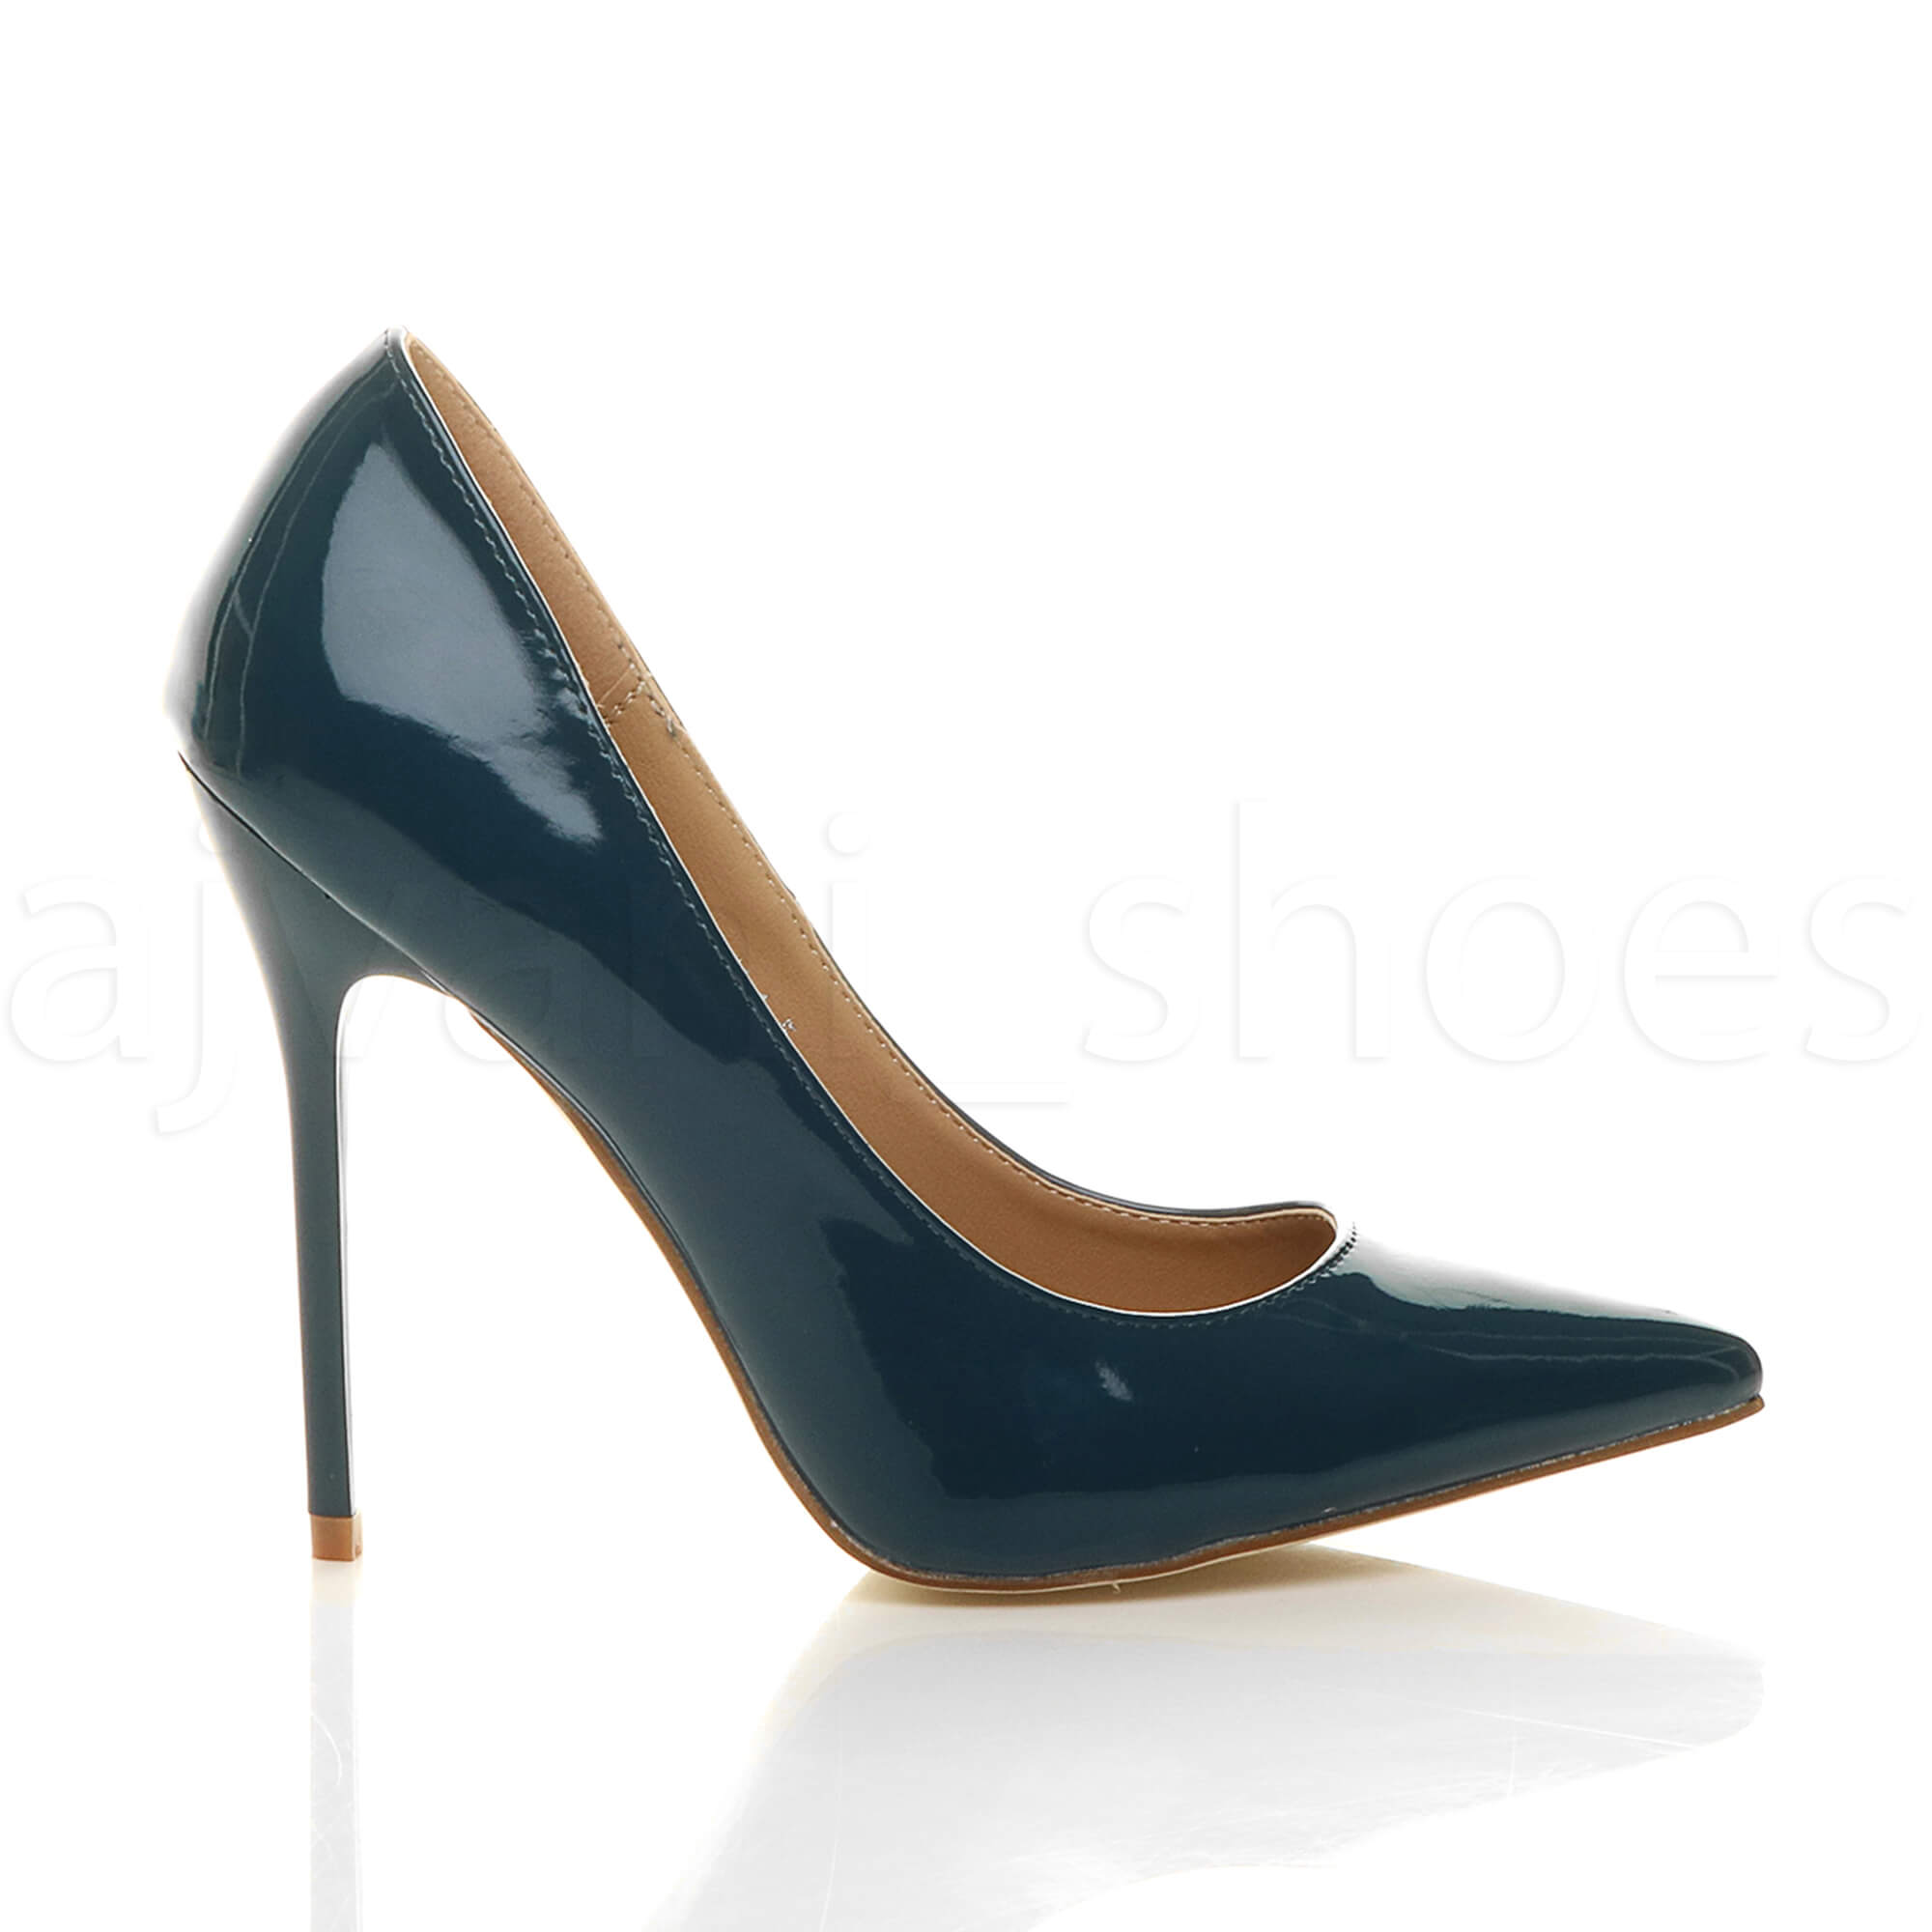 WOMENS-LADIES-HIGH-HEEL-POINTED-CONTRAST-COURT-SMART-PARTY-WORK-SHOES-PUMPS-SIZE thumbnail 208